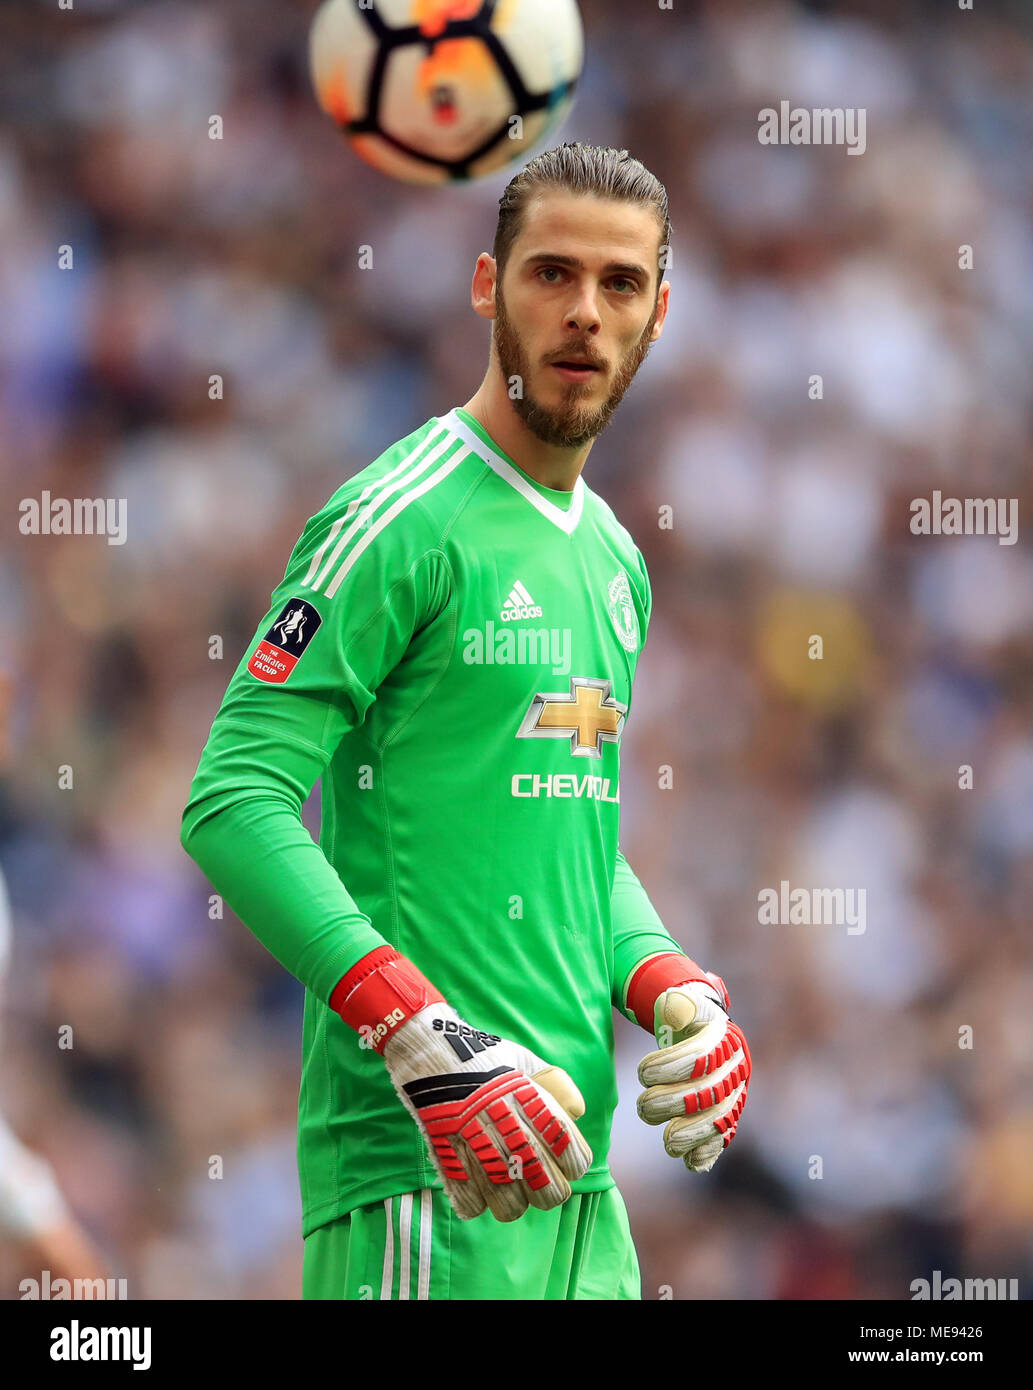 Manchester United Goalkeeper David De Gea Stock Photo Alamy